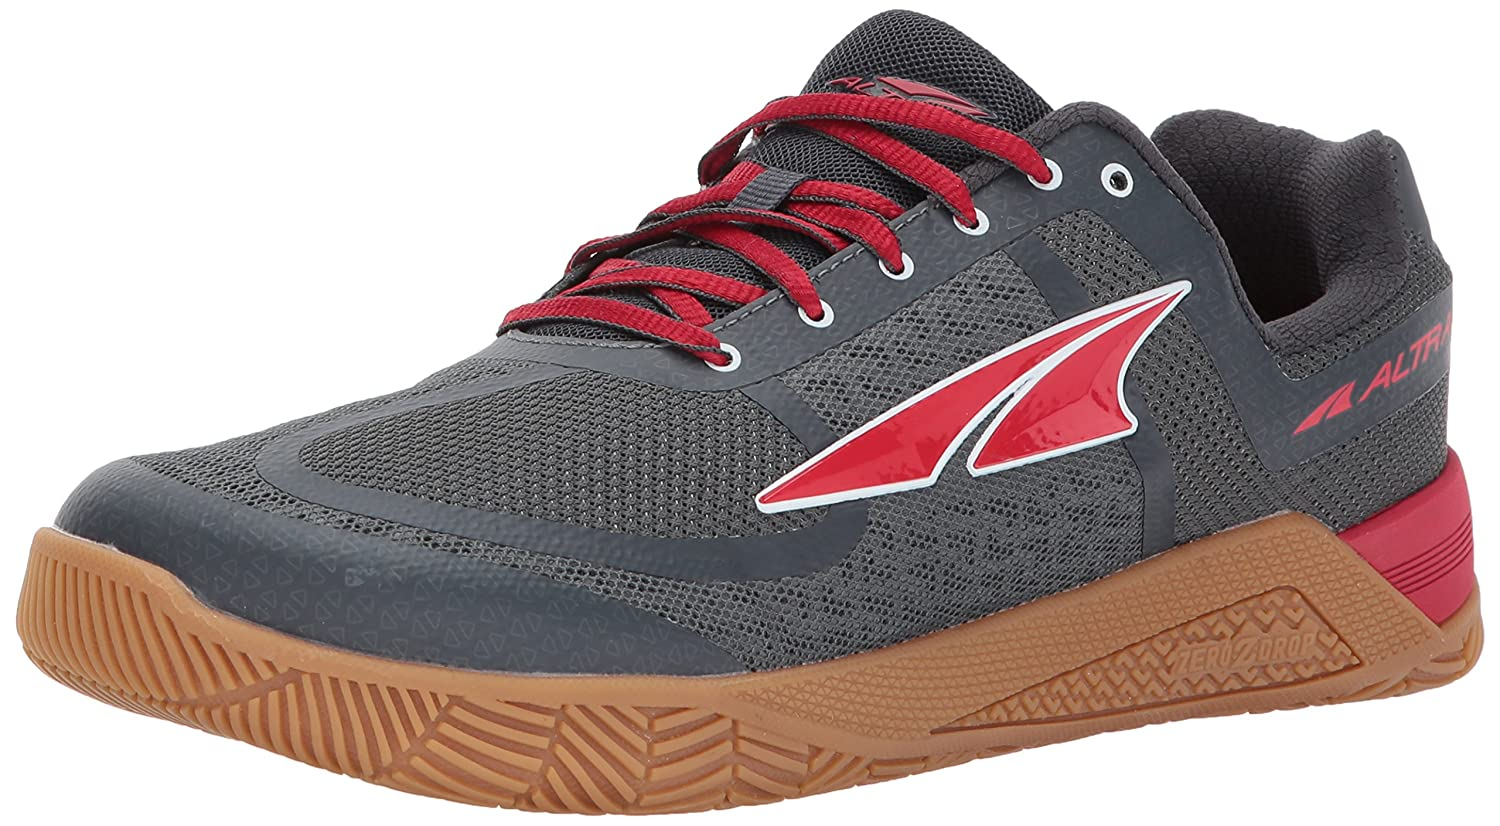 Altra HIIT XT Men's Cross-Training Shoe Men' s Hiit Xt